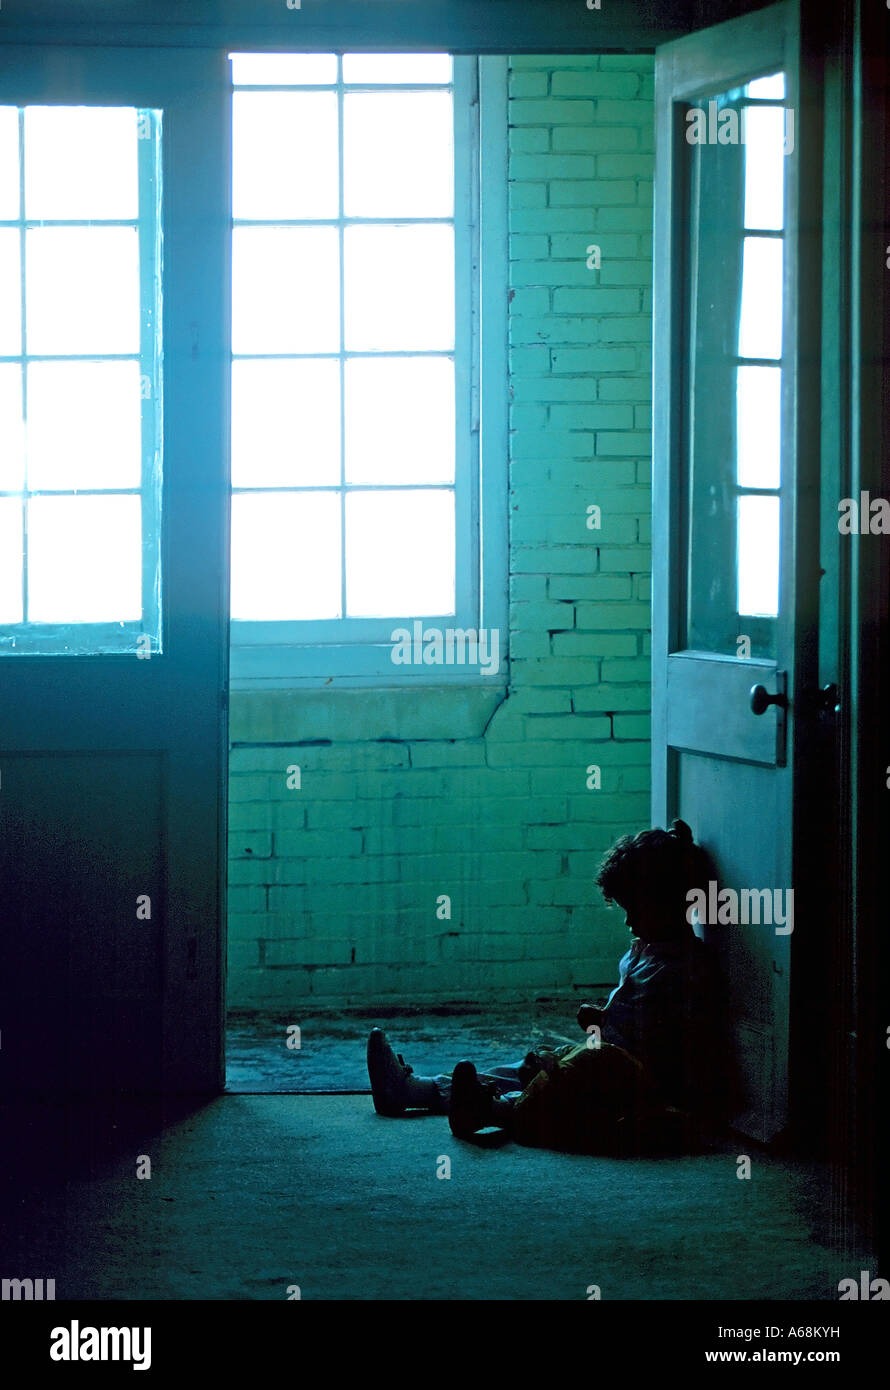 Small child sits alone in the dark dirty hallway of a rundown apartment building - Stock Image